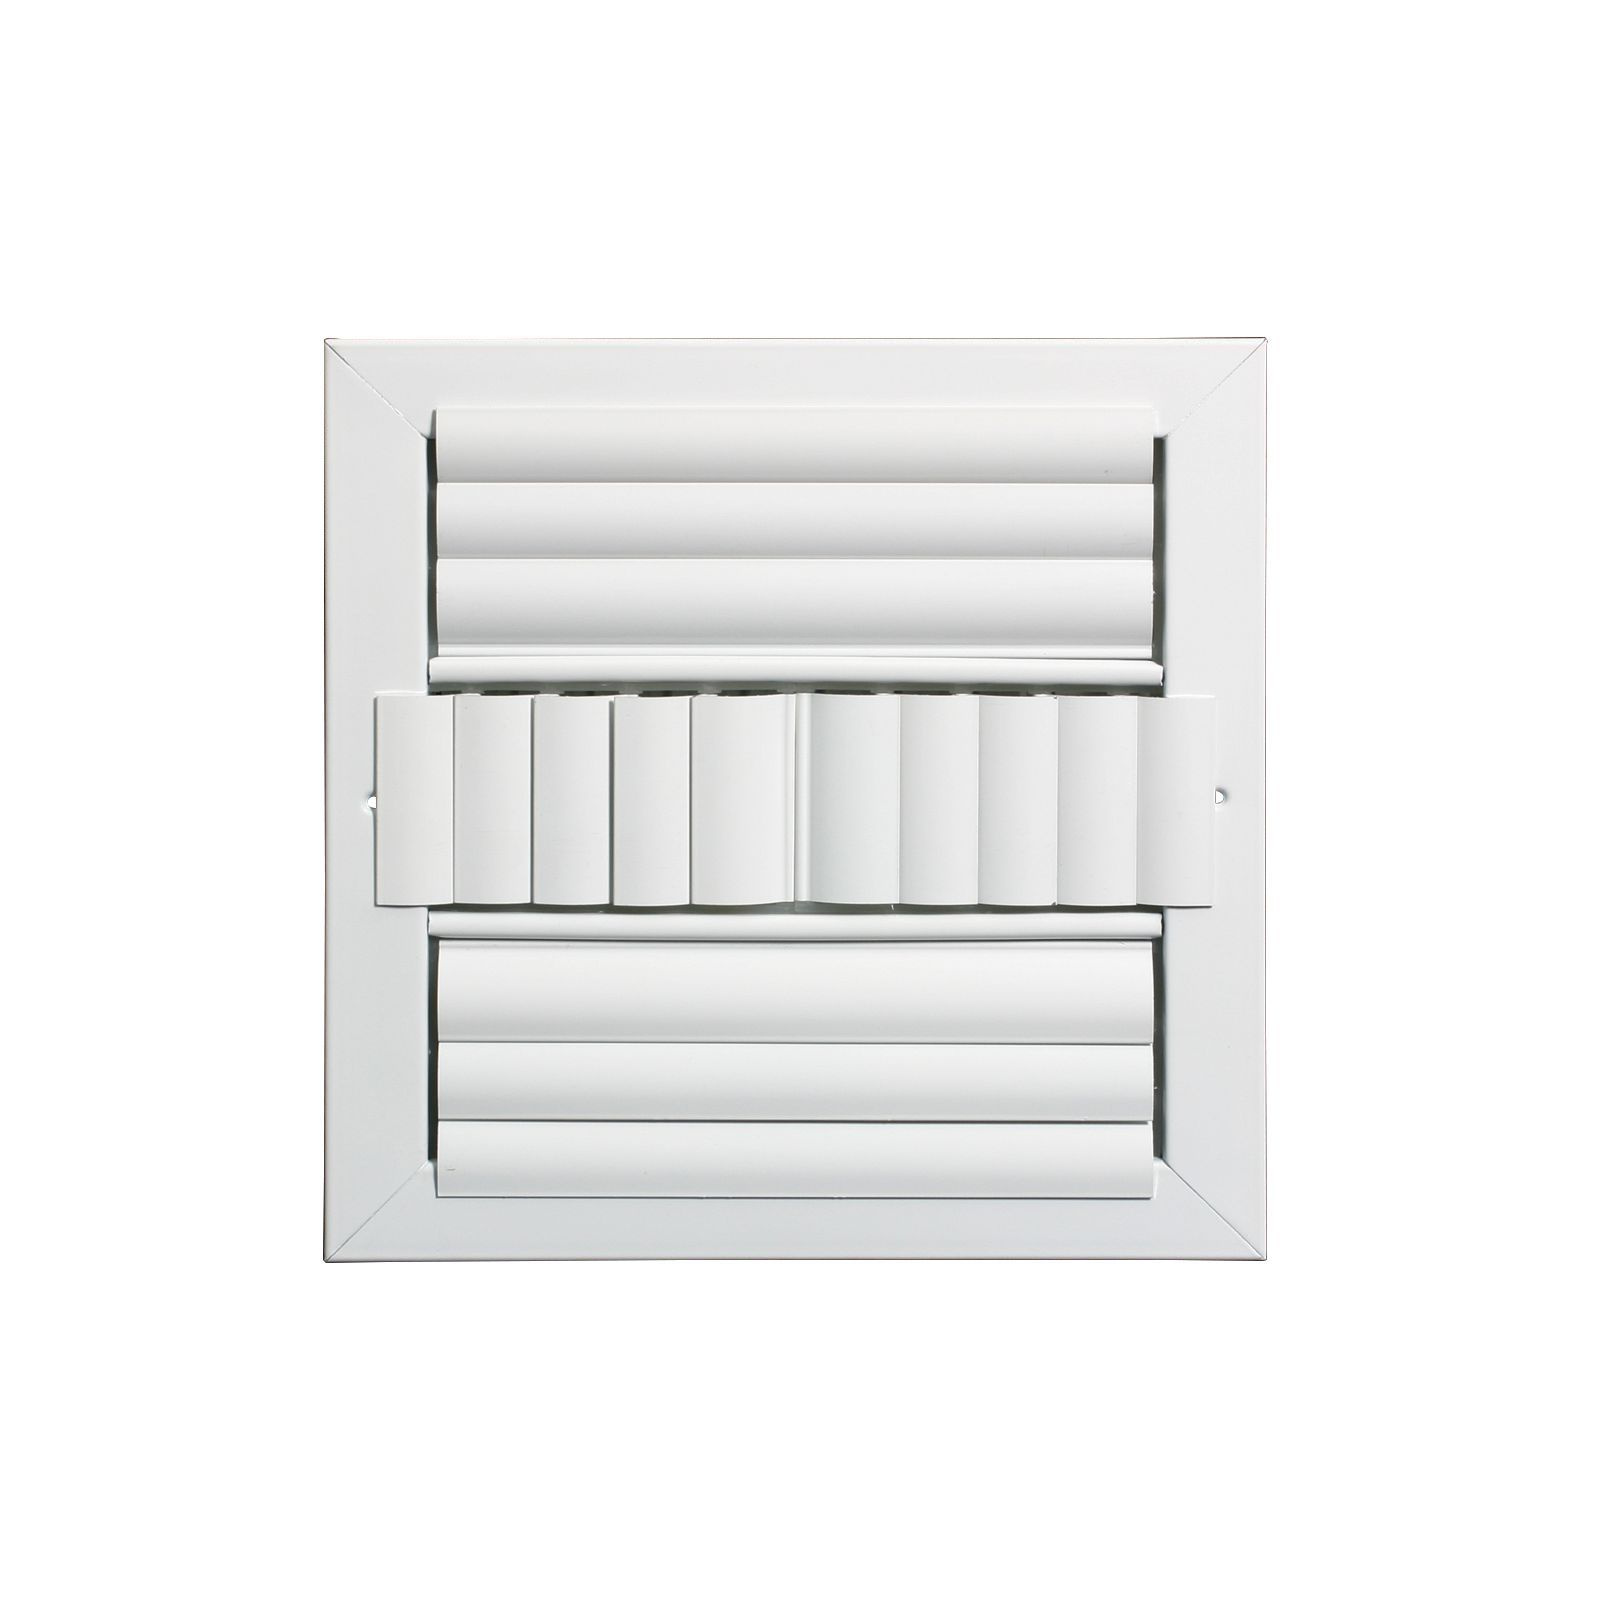 "Grille Tech CL4M1414 - Aluminum Ceiling 4Way Deflection Supply, Multi-shutter 14"" X 14"" White"